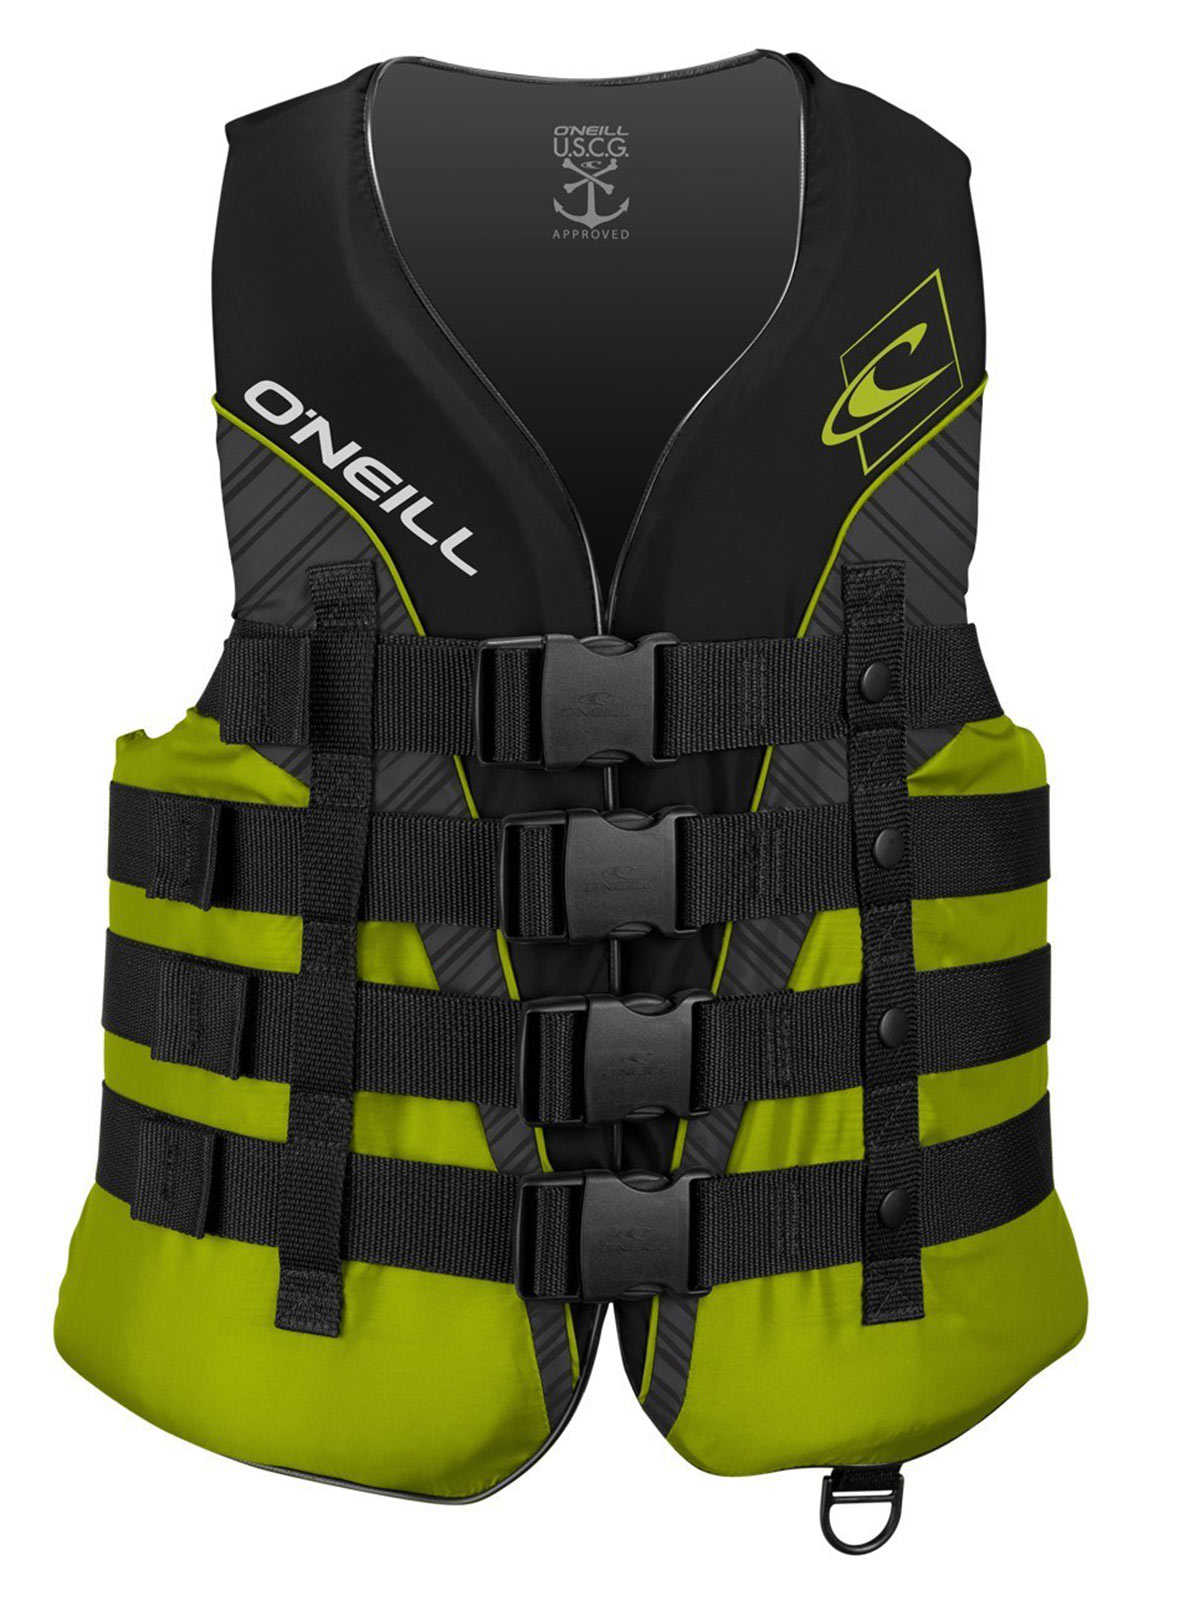 O-039-Neill-Mens-Superlite-Life-Vest-US-Coast-Guard-Approved-Nylon-Lifejacket thumbnail 22